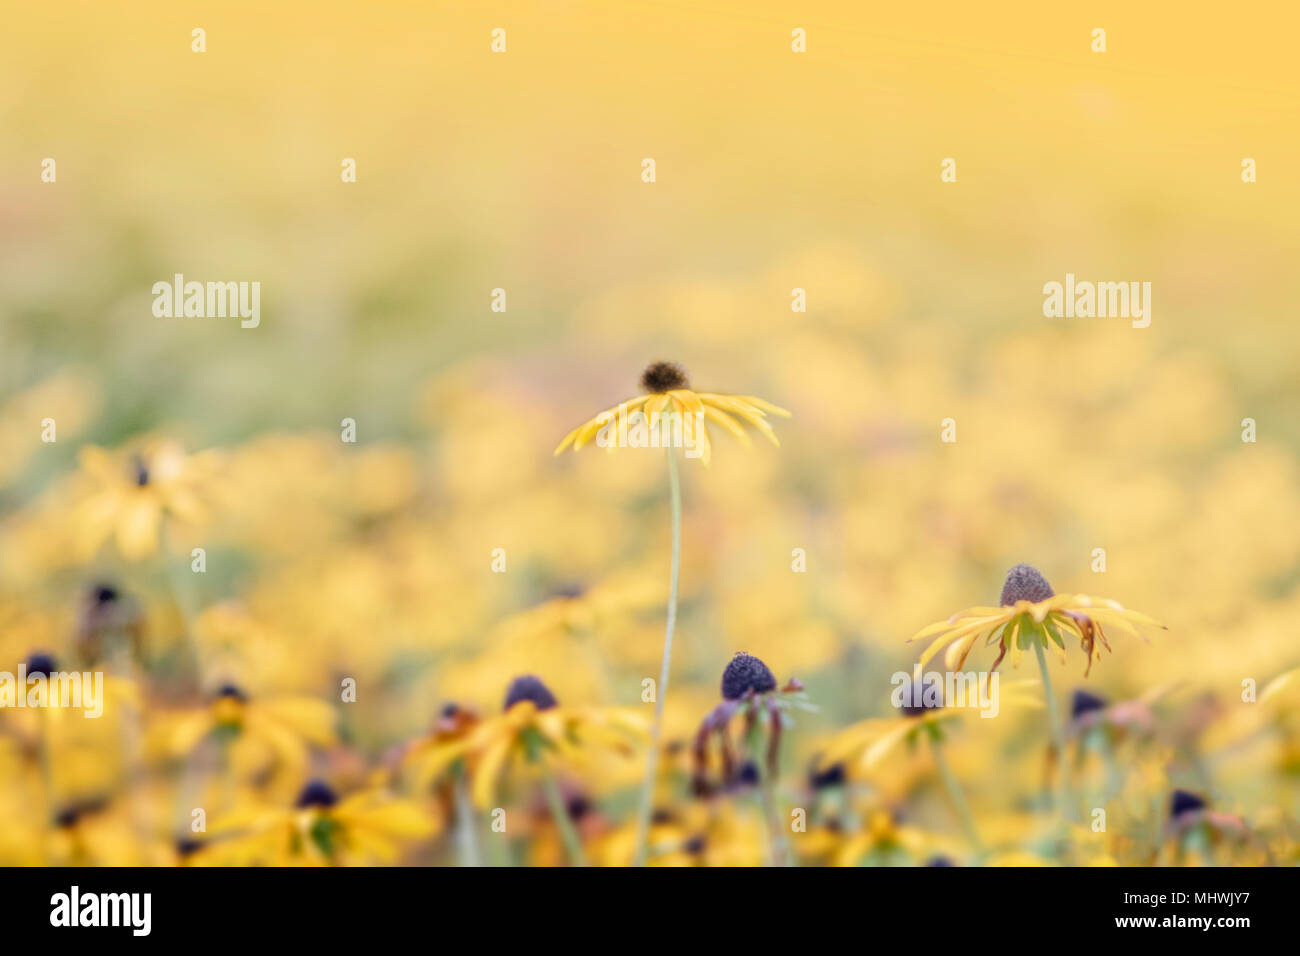 Sea of yellow flowers with one standing above the rest, macro photo so soft focus - Stock Image